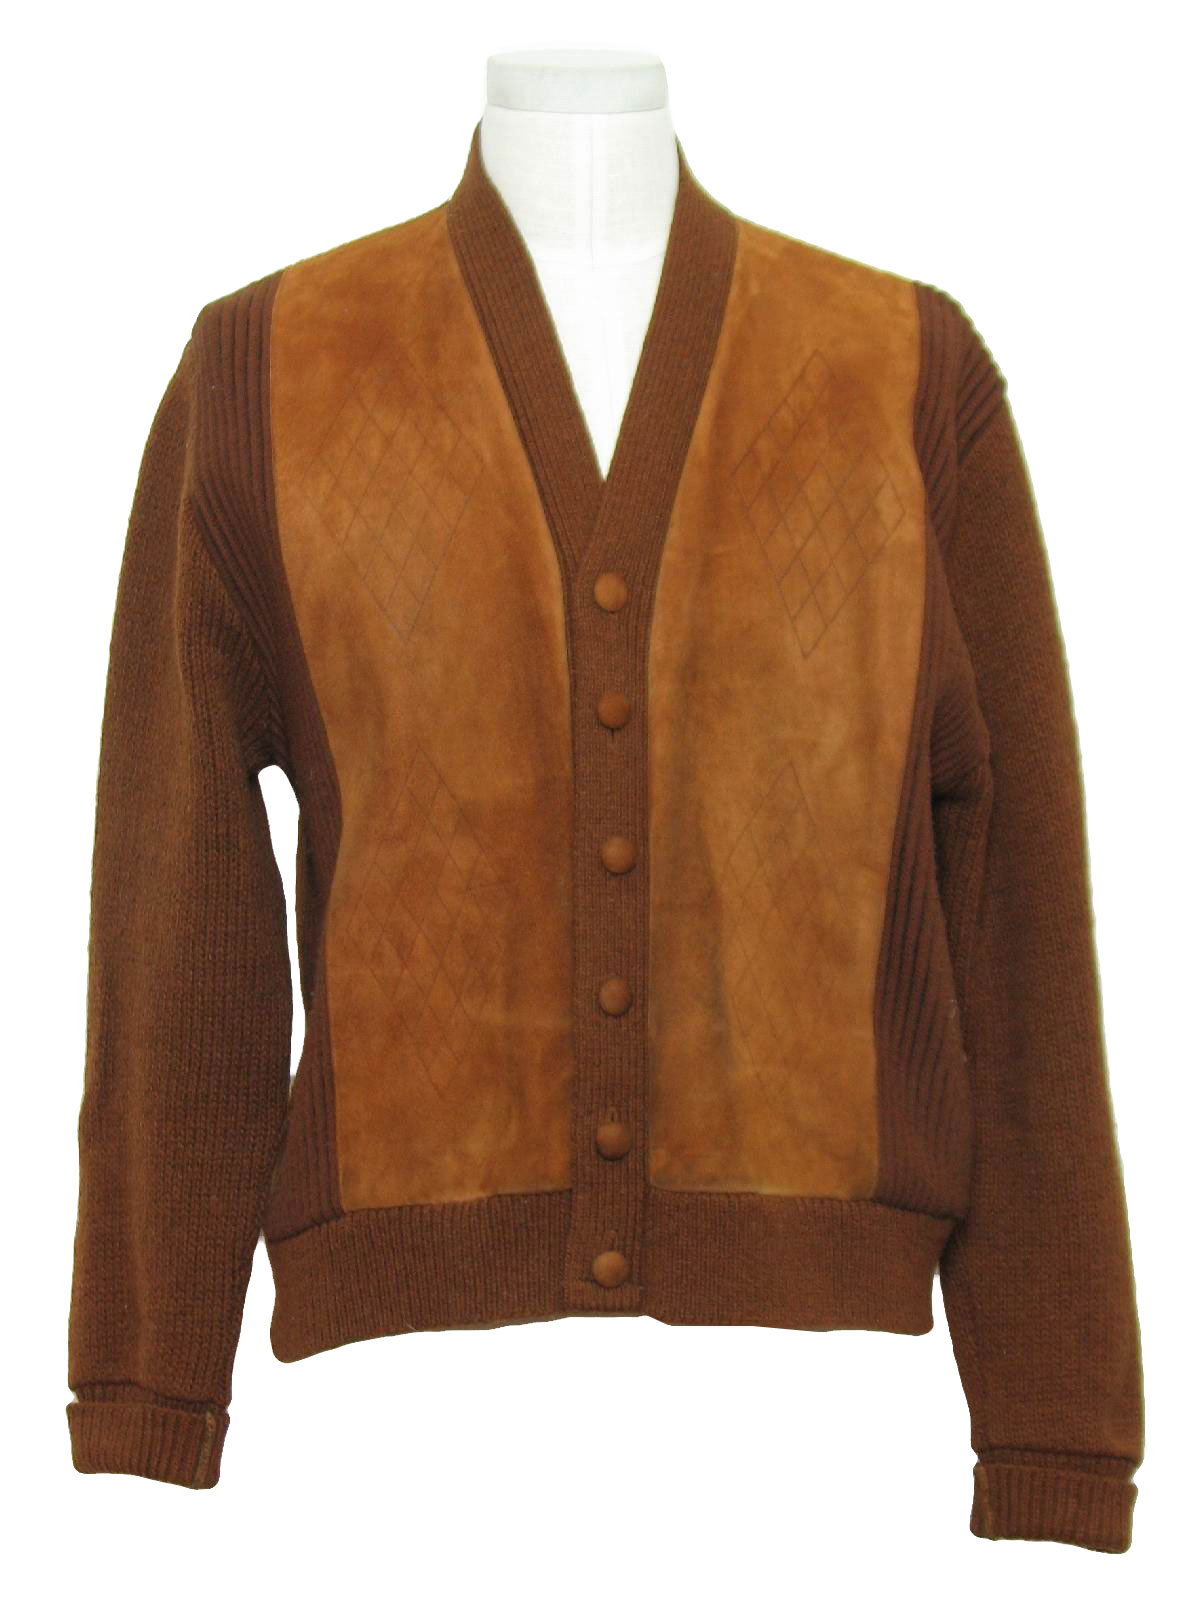 1960s Sweater Early 60s No Label Mens Brown Wool